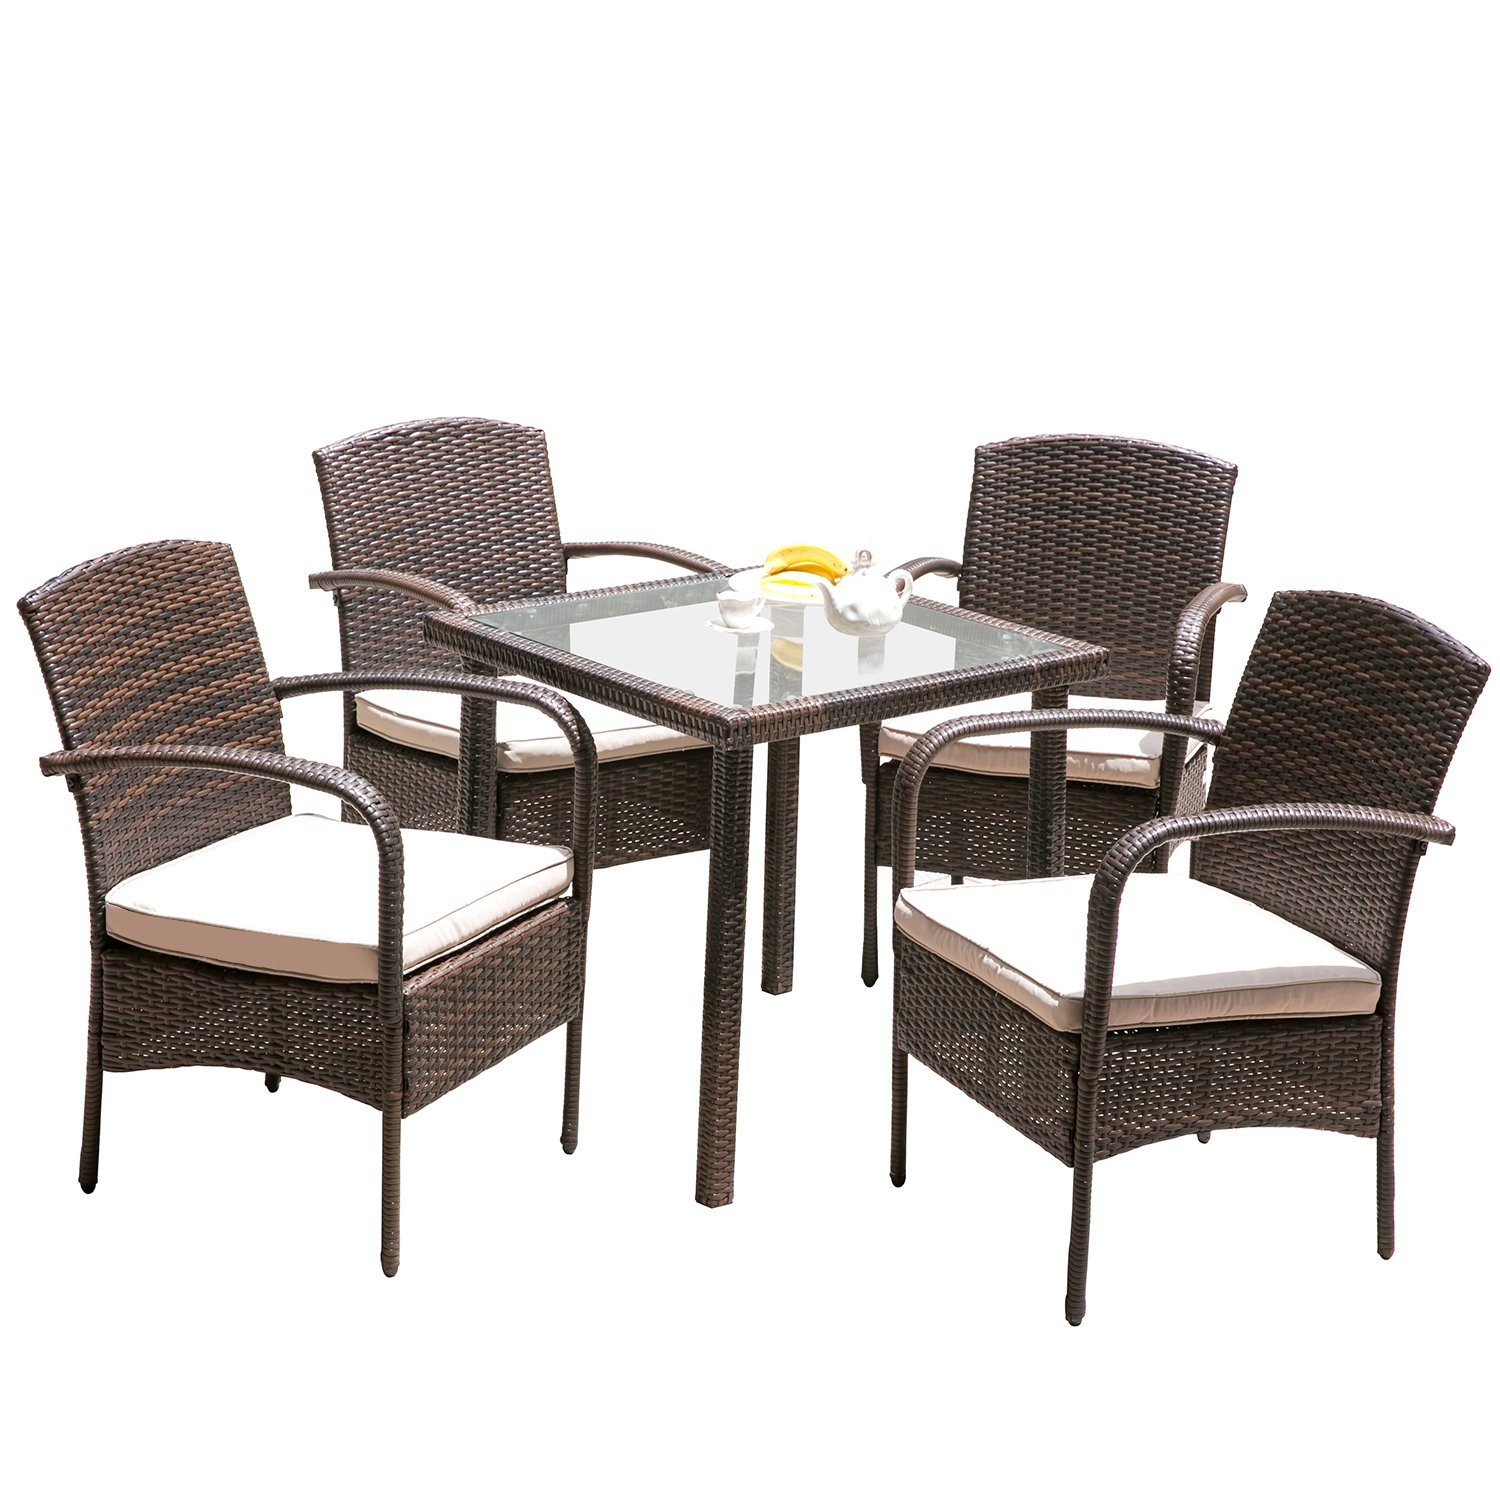 Amazon.com: Hq Rattan Wicker Garden Lawn Patio Furniture ...